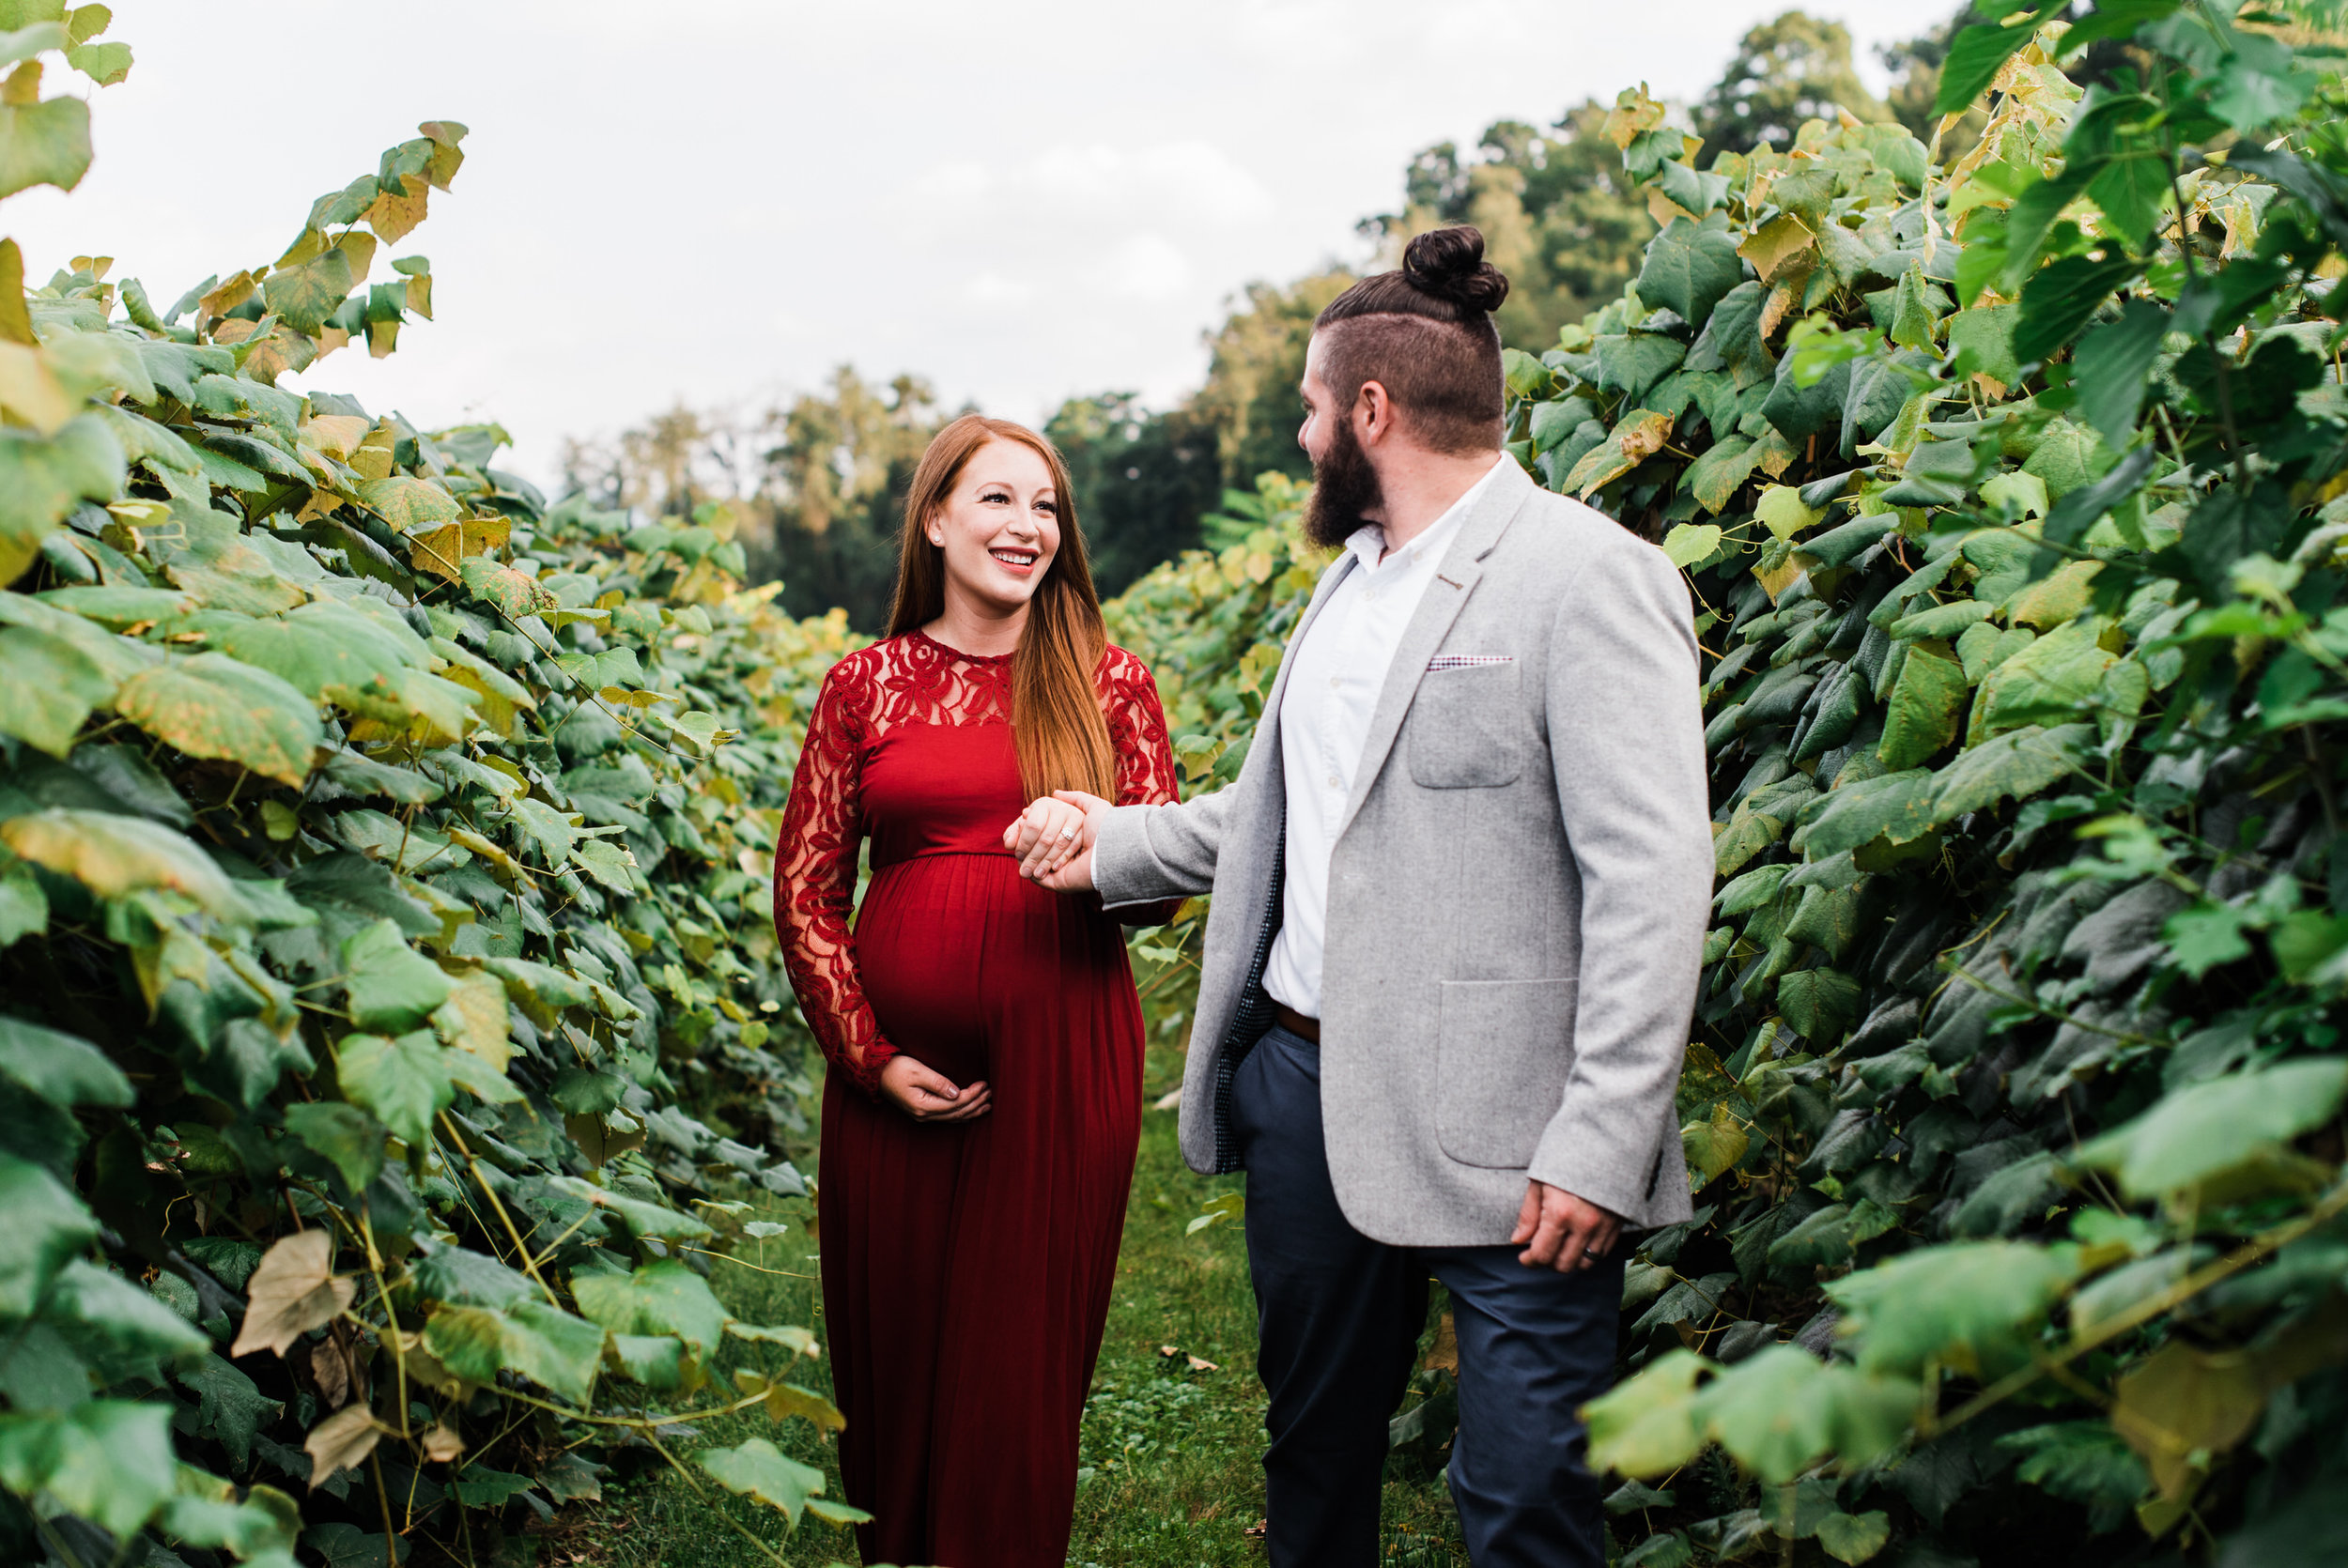 pittsburgh-maternity-photographers-winery-apple-orchard-session_17.jpg